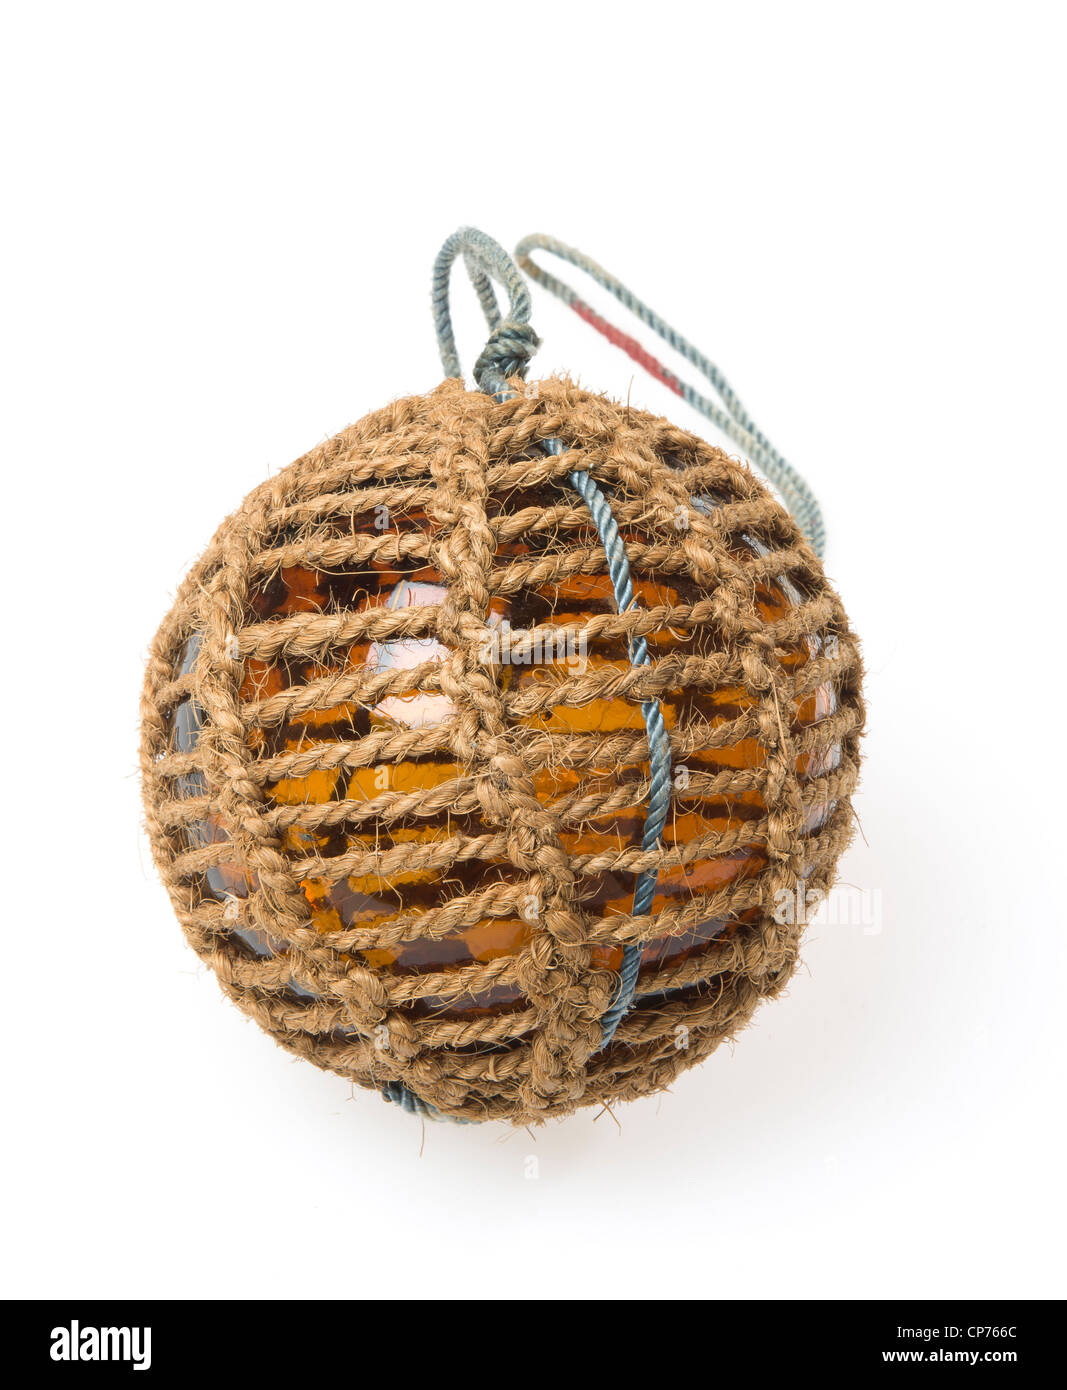 Glass fishing buoy used to keep fishing nets floating. This is an old glass antique. Isolated on white background. - Stock Image